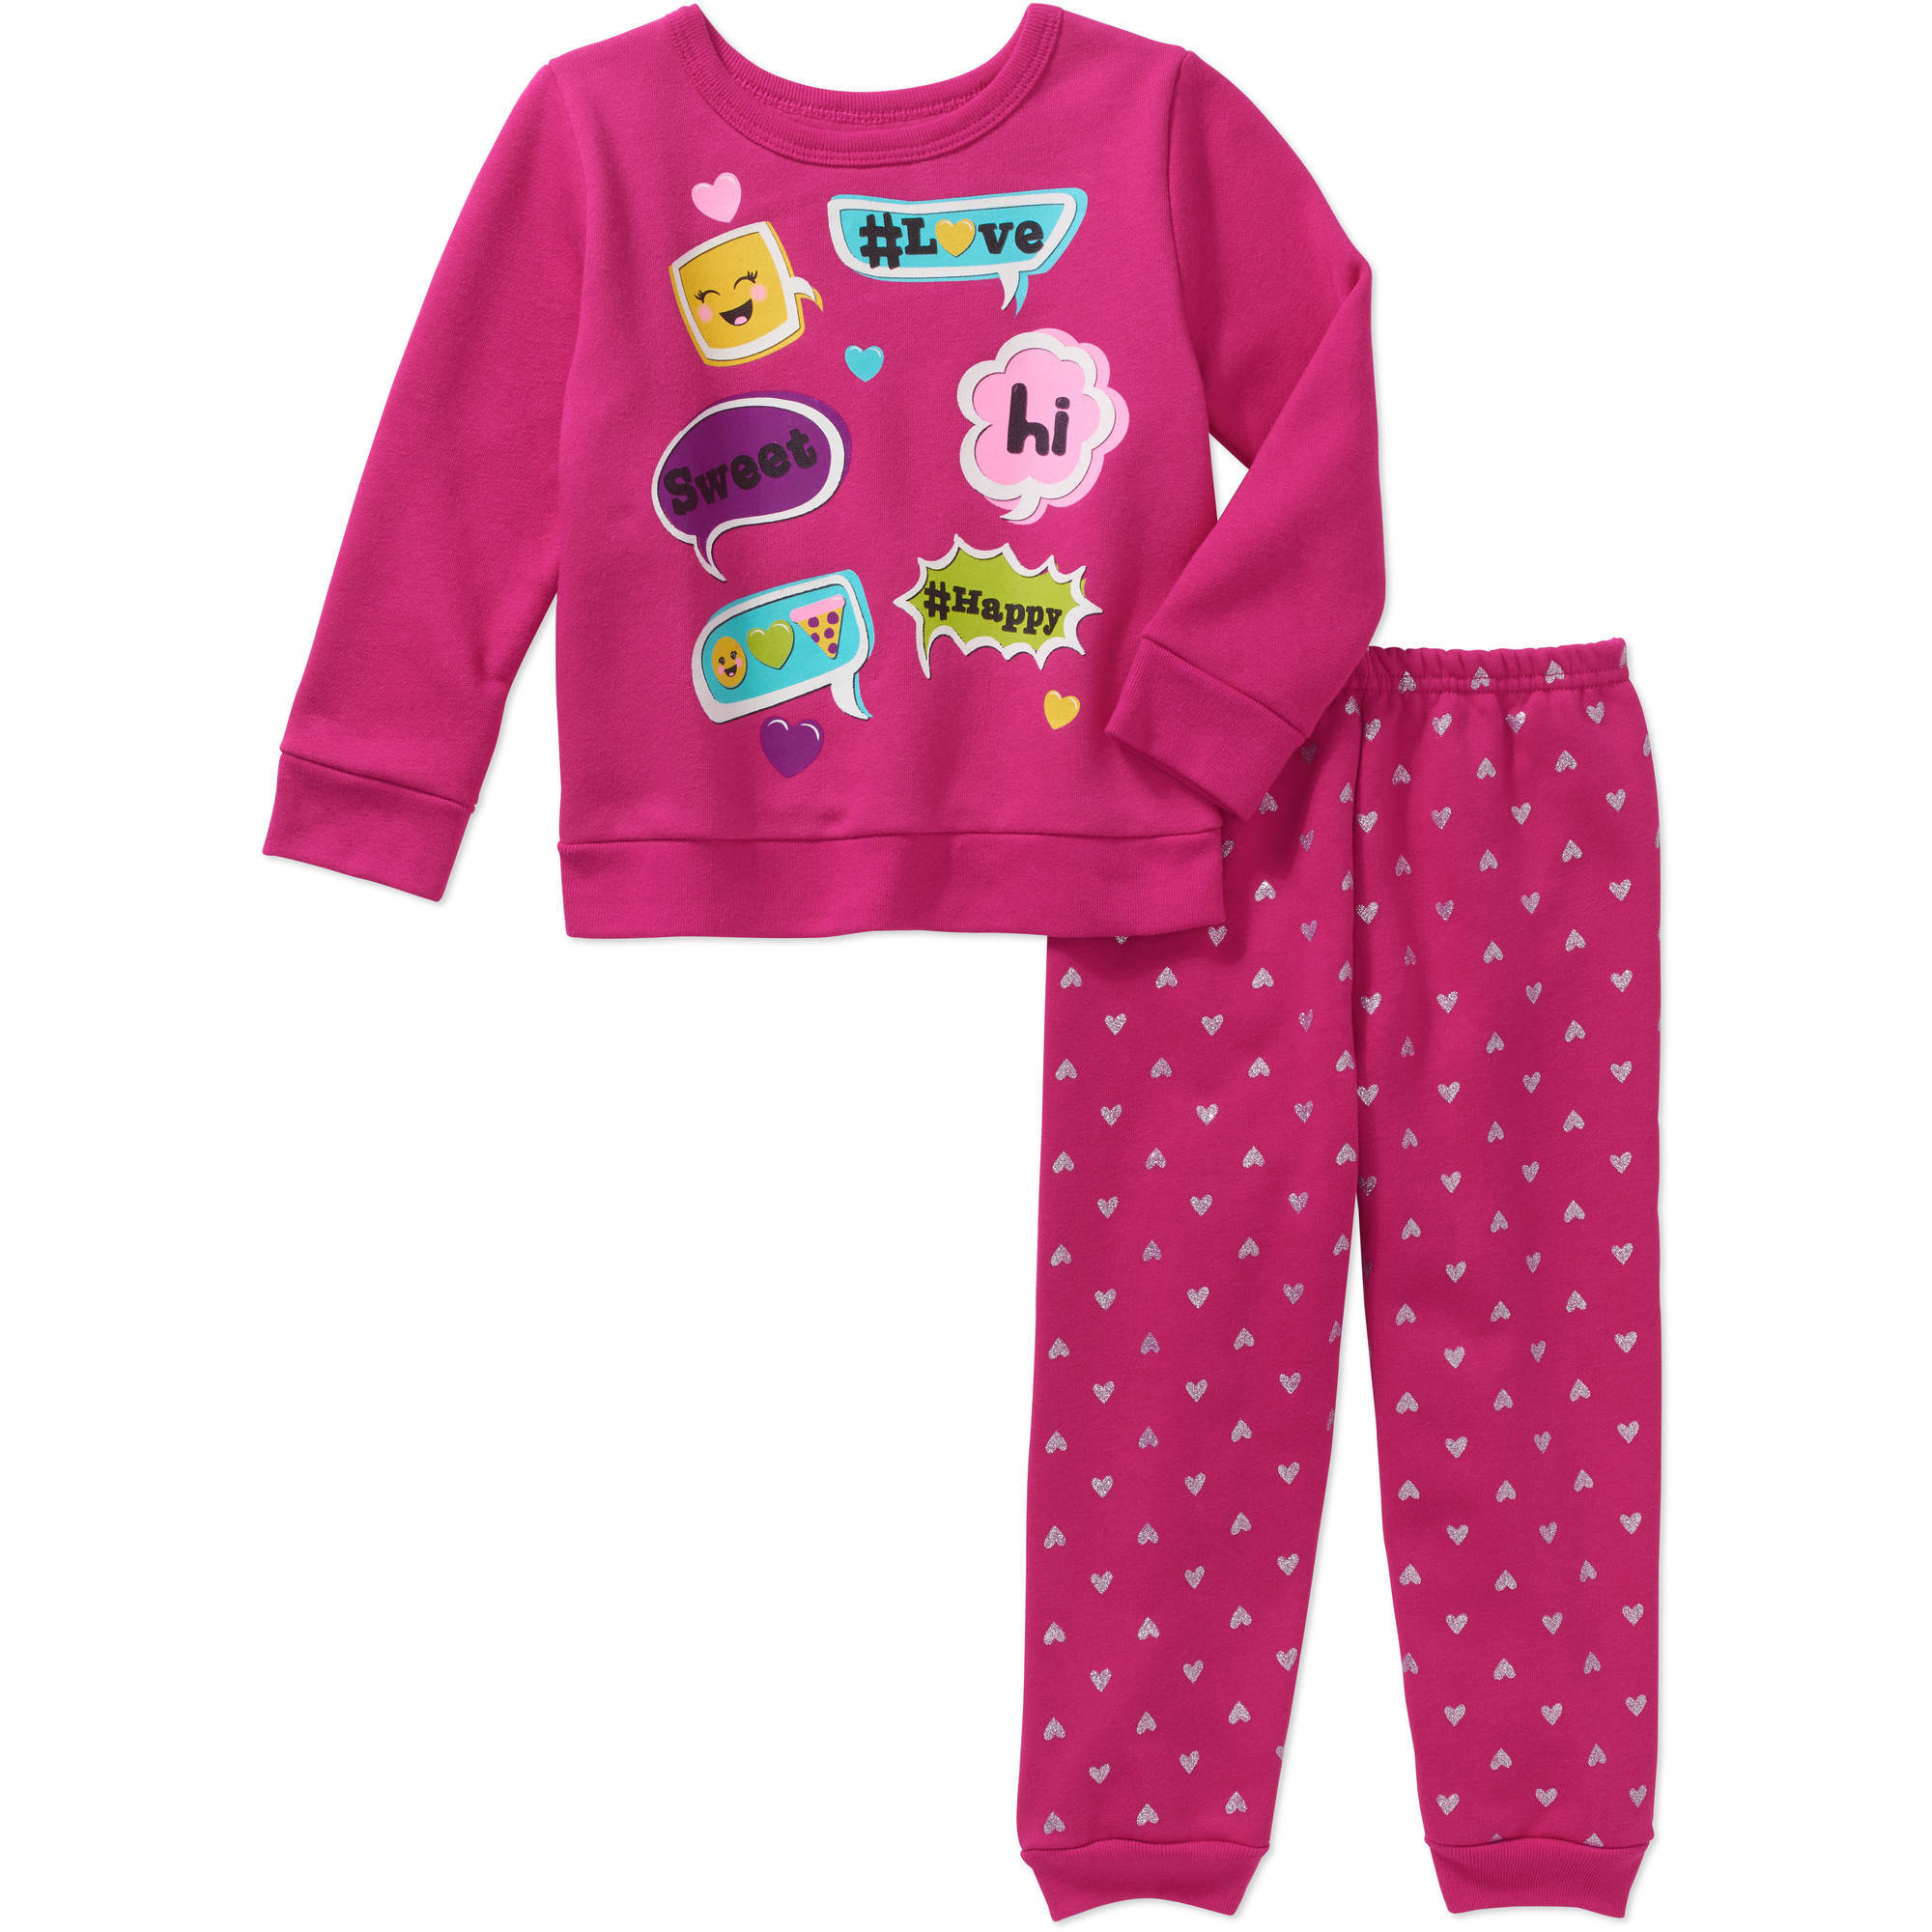 Garanimals Baby Toddler Girls' Basic Fleece Top and Pants 2-Piece Set